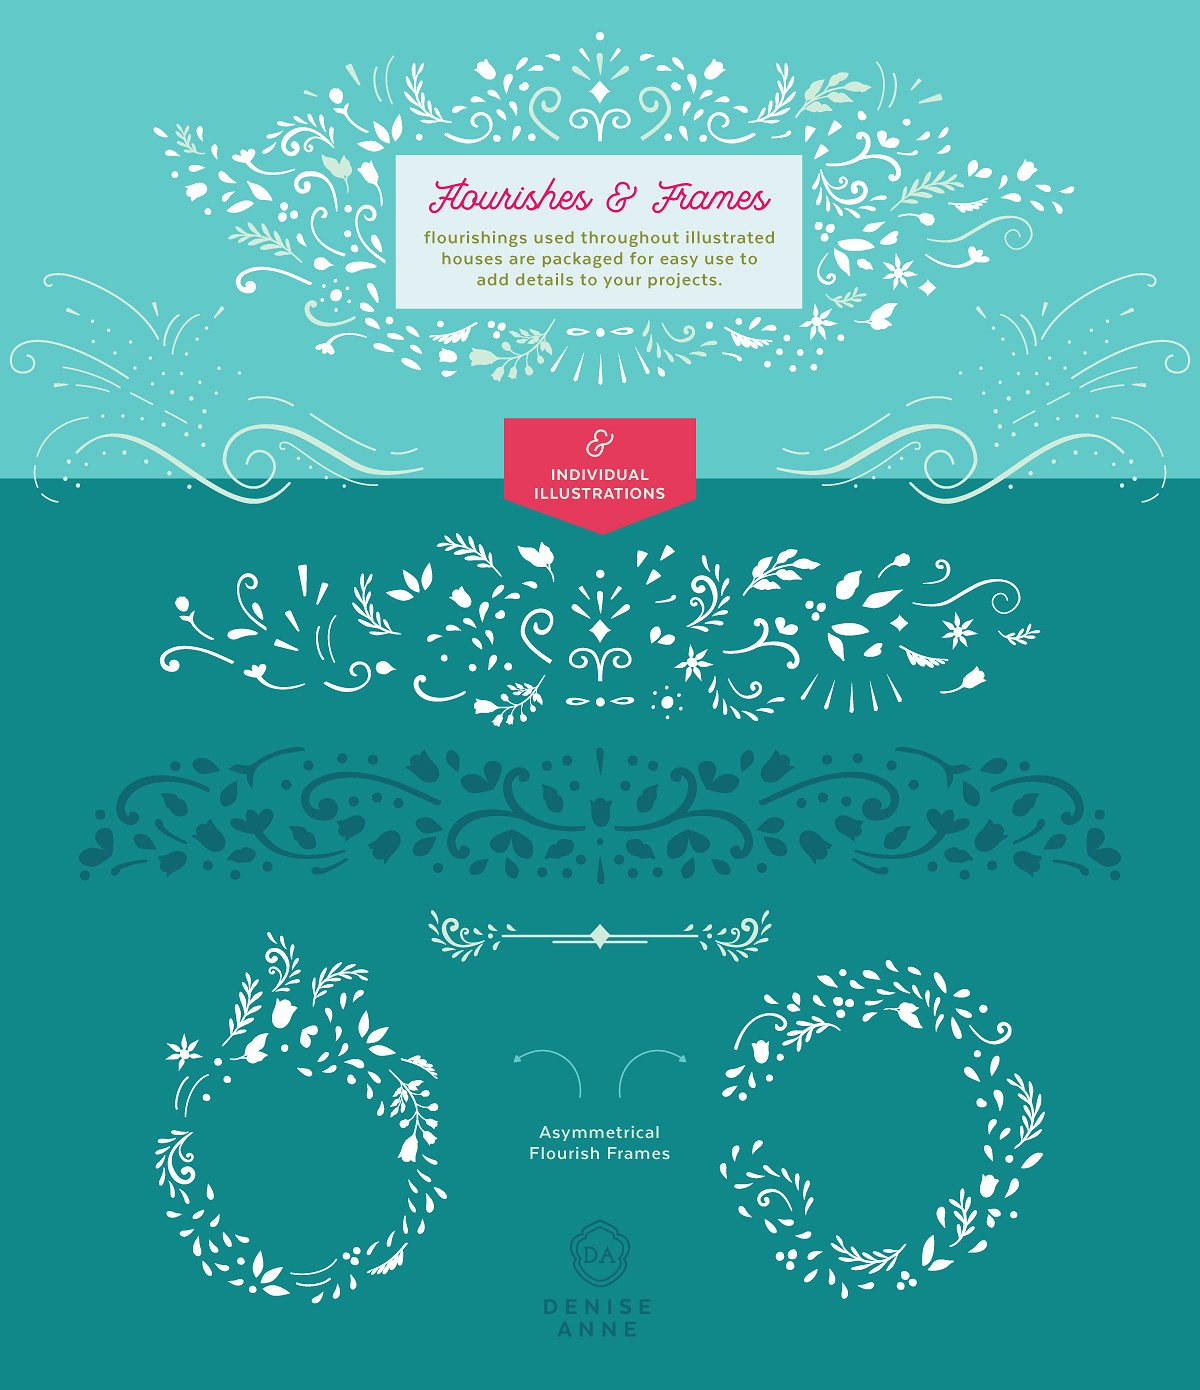 Decorative flourishes and frames